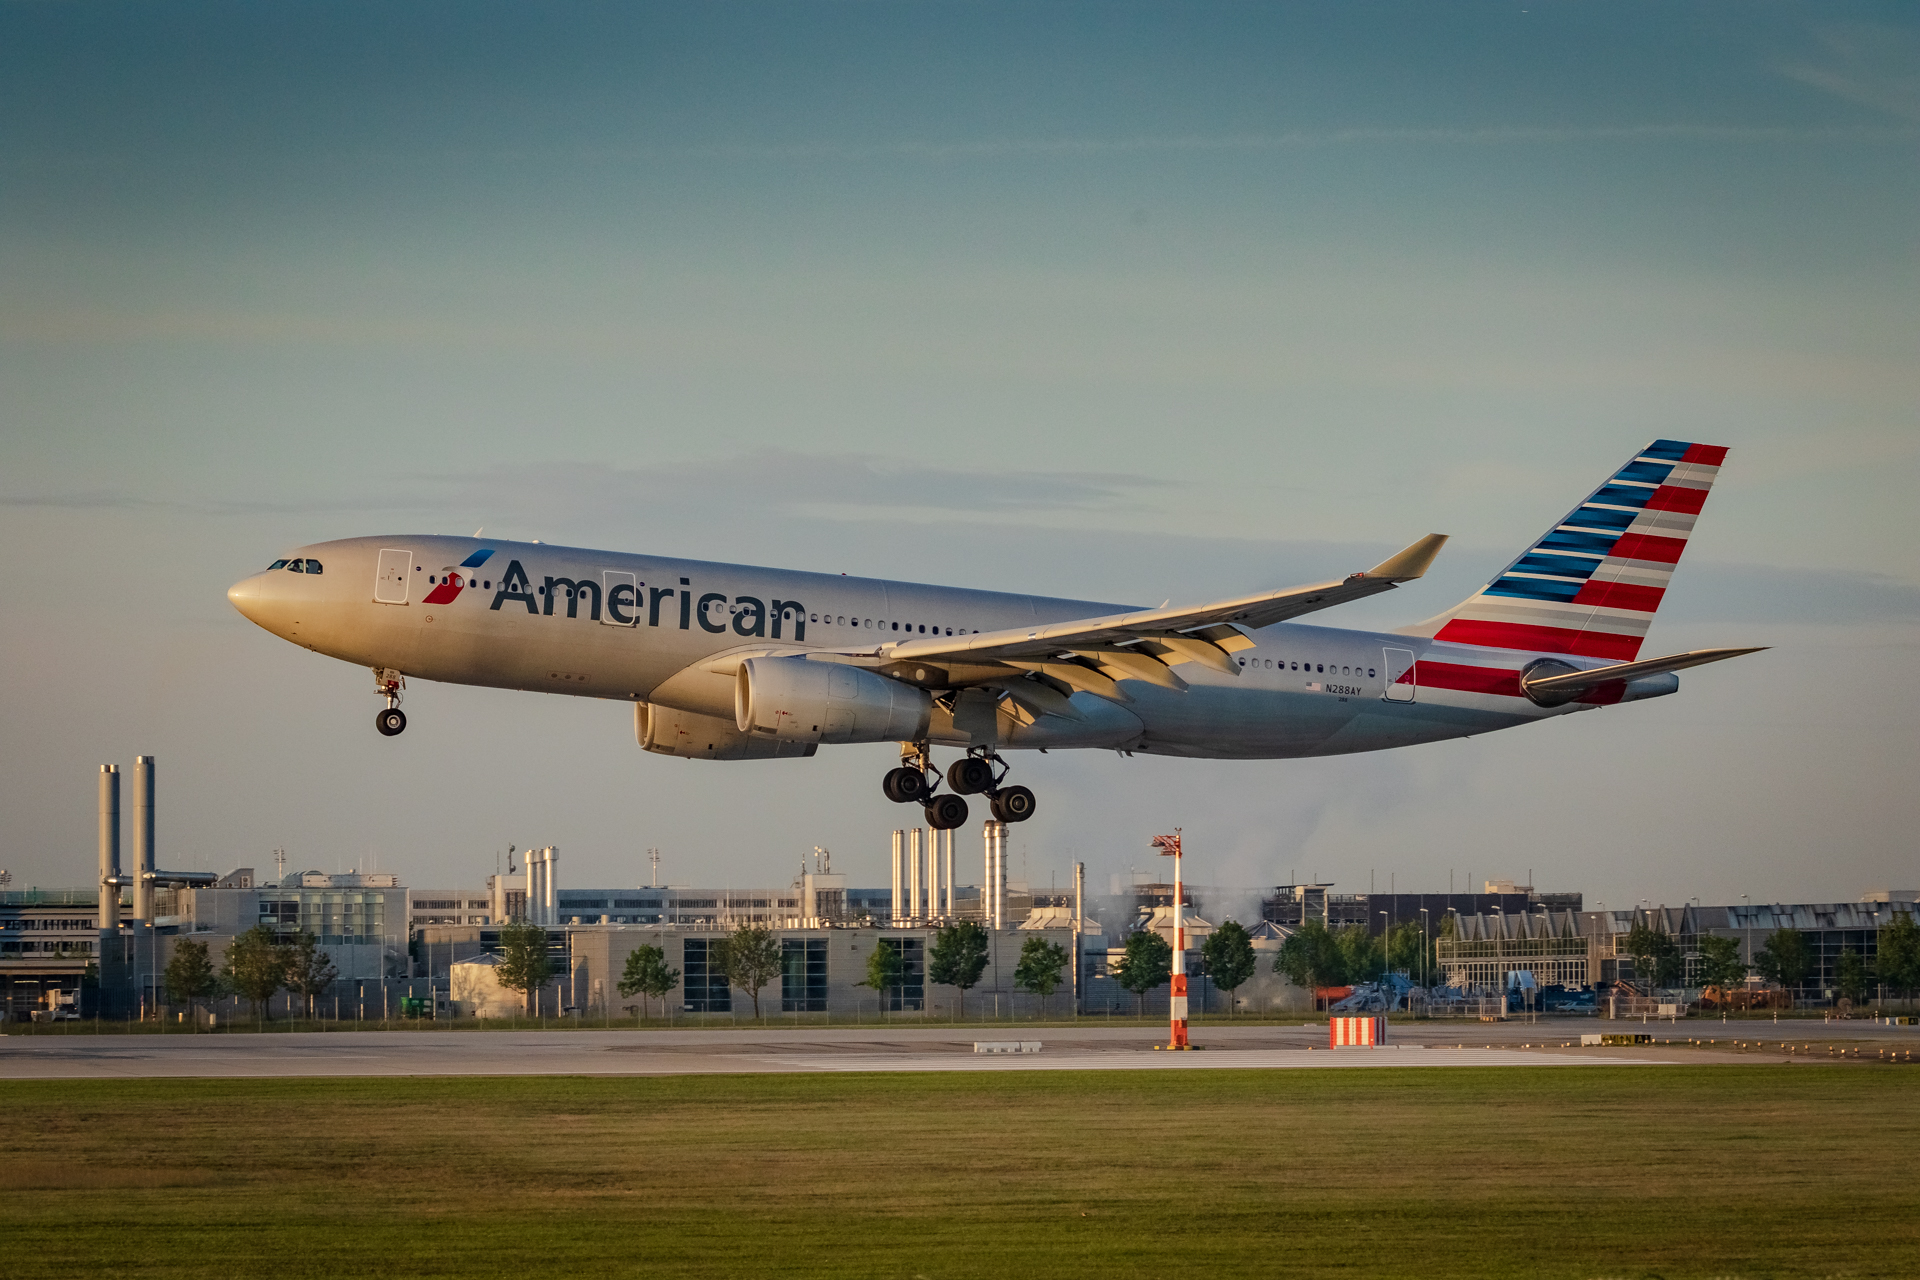 Airbus A330-200 der American Airlines. Foto: thekk.xyz